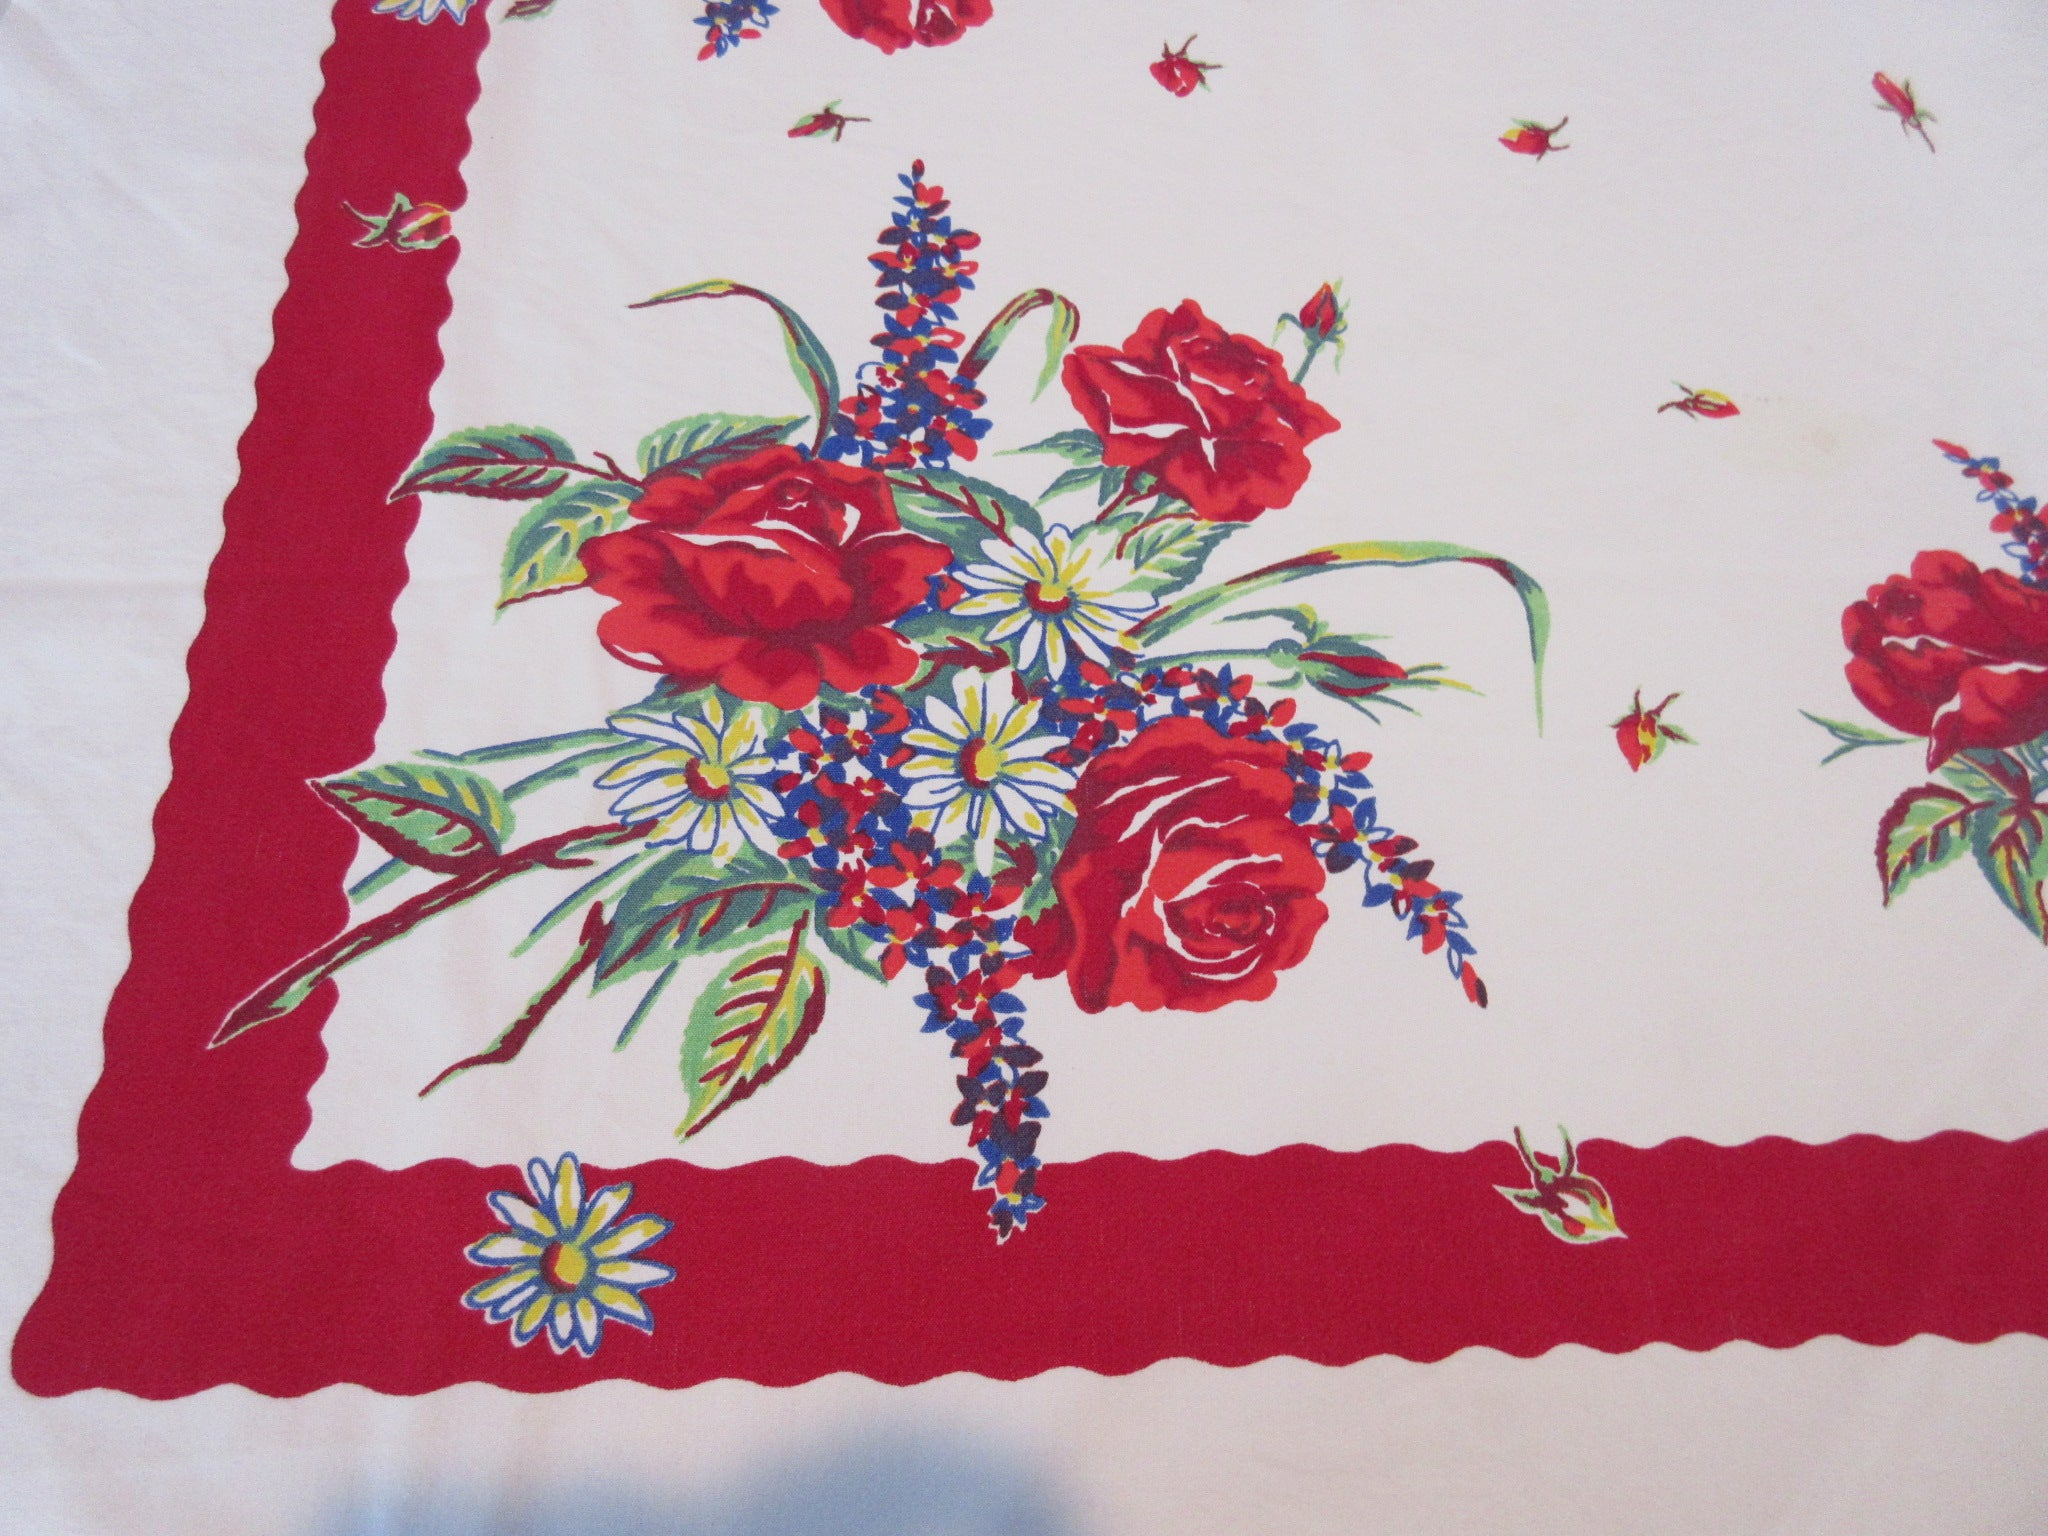 Roses on Red Floral Cutter Vintage Printed Tablecloth (50 X 46)